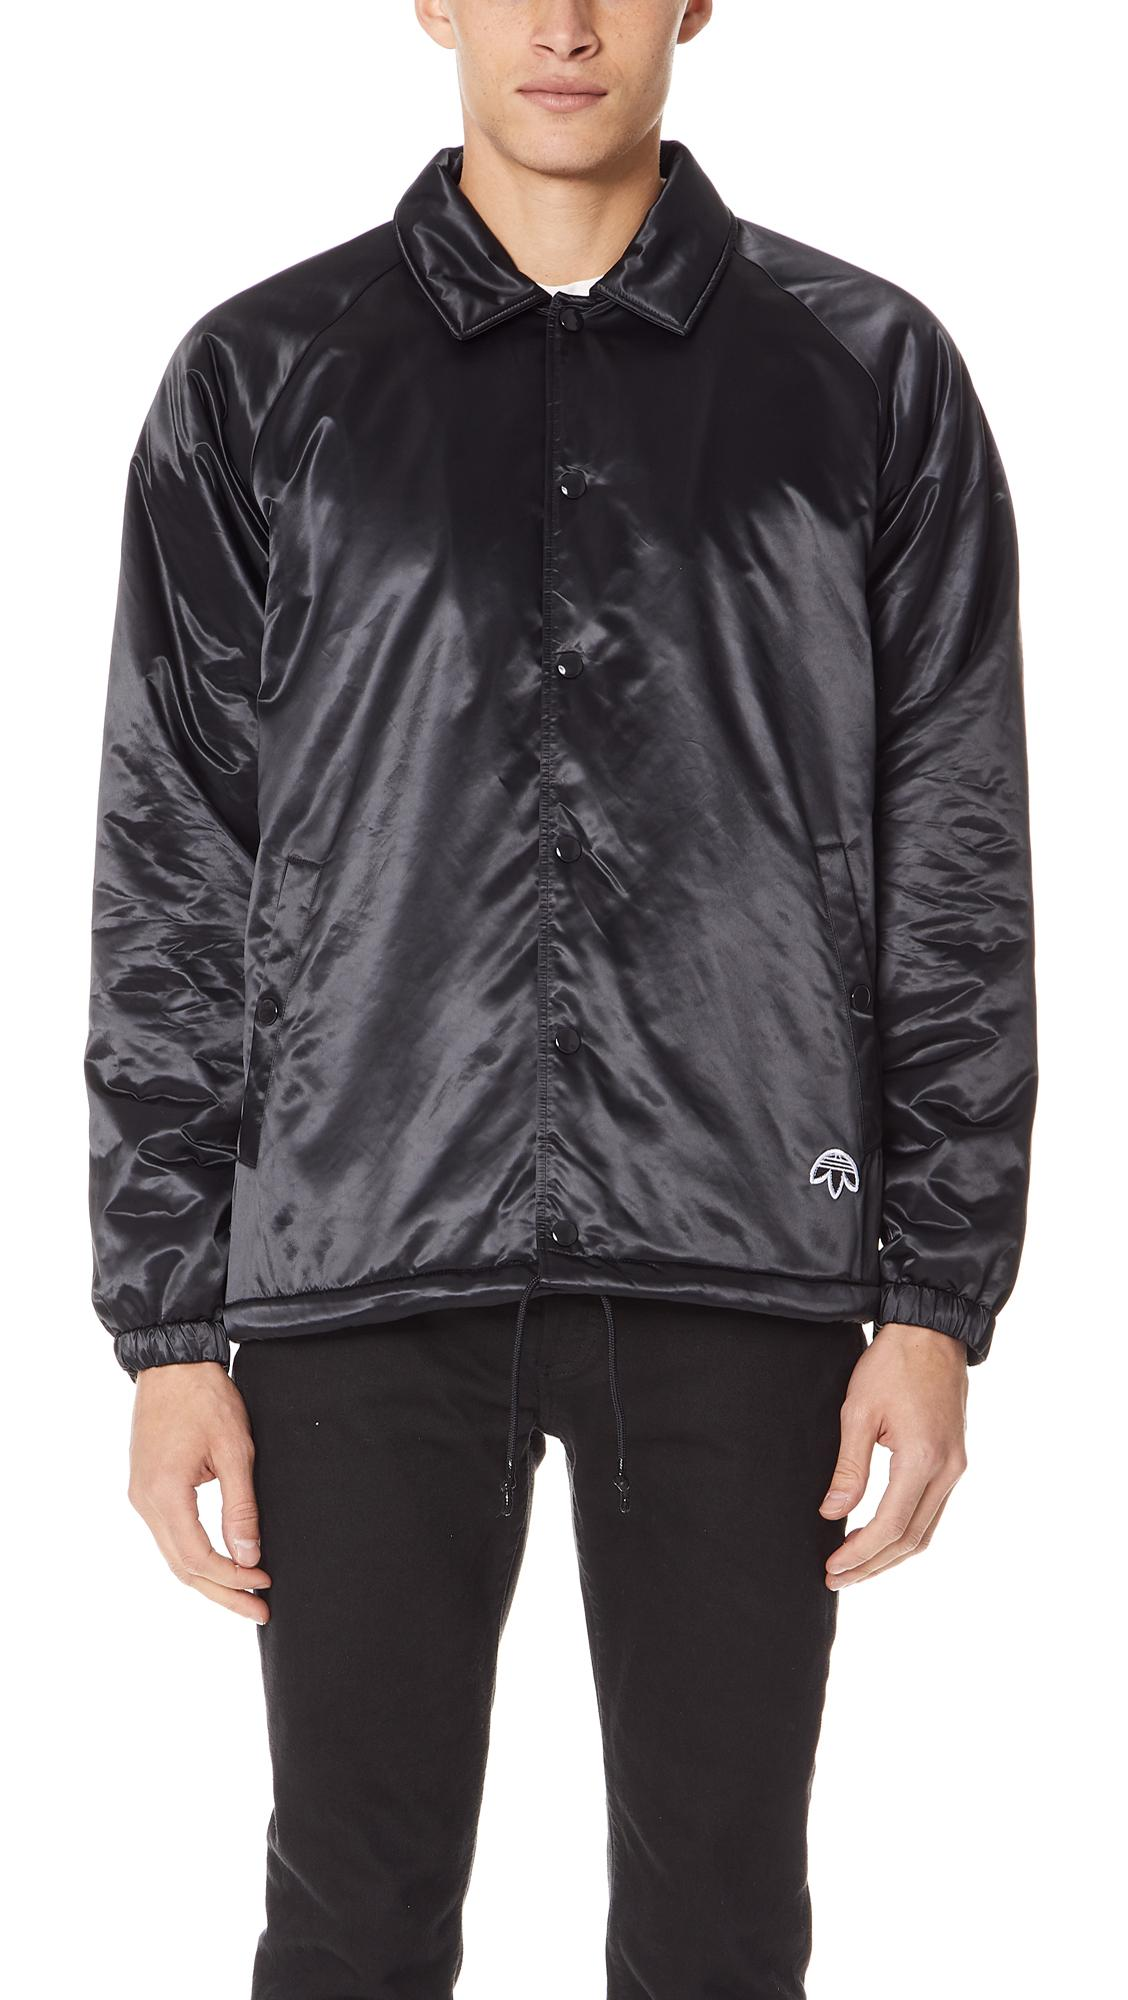 f80f7dd8a2 Adidas Originals By Alexander Wang Aw Coach Jacket In Black